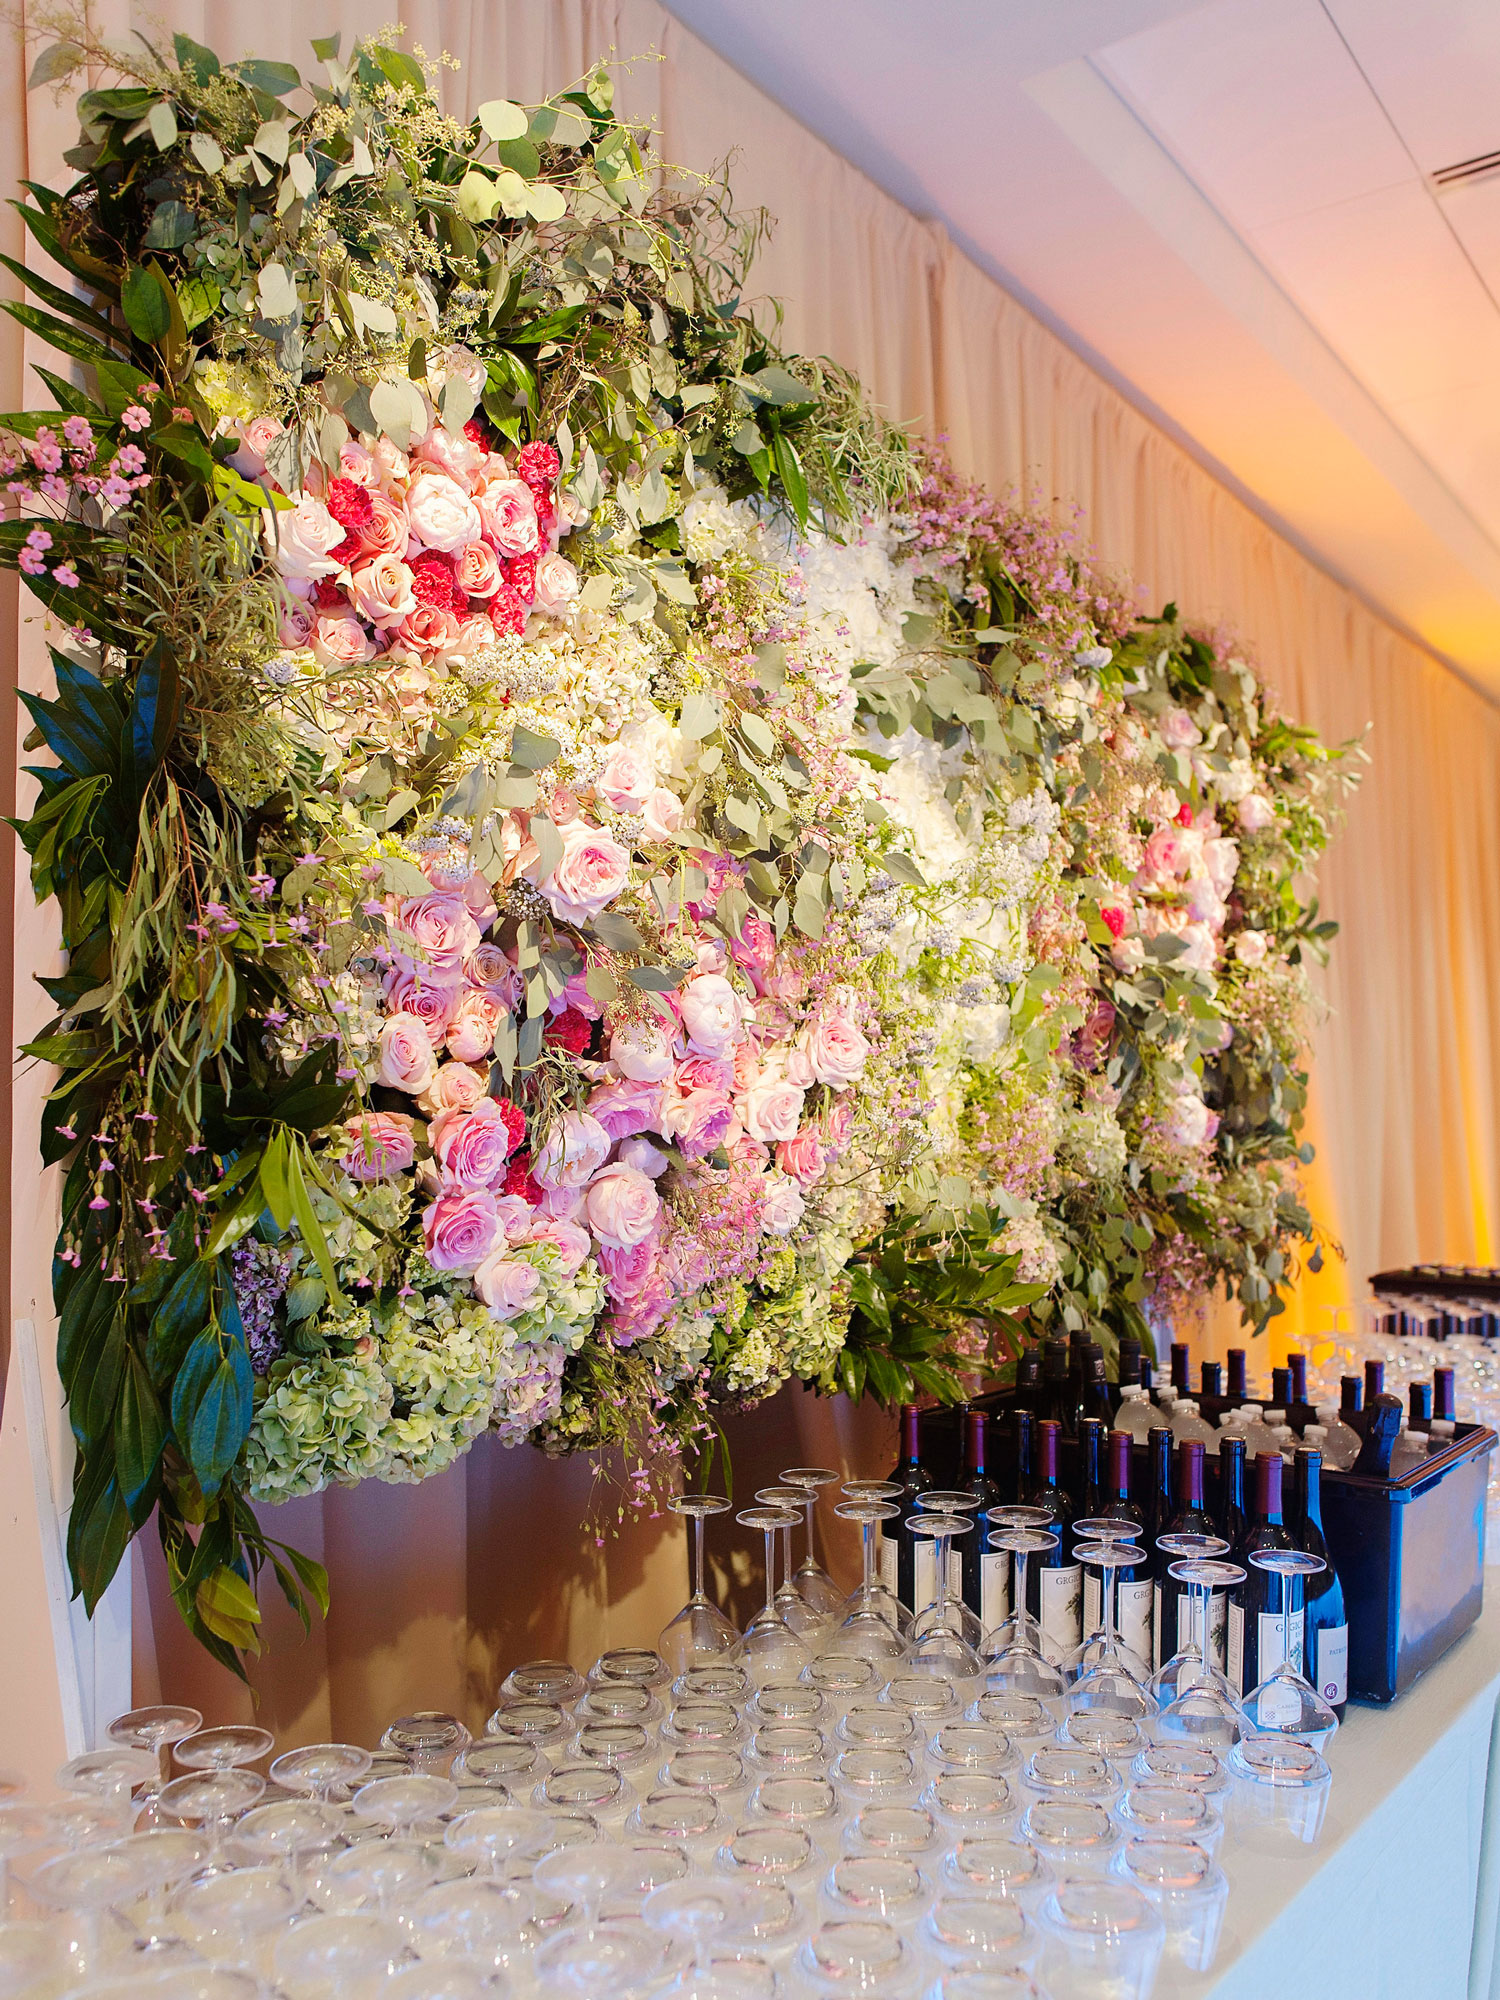 Greenery and flower wall behind bar at wedding reception drink area wedding ideas